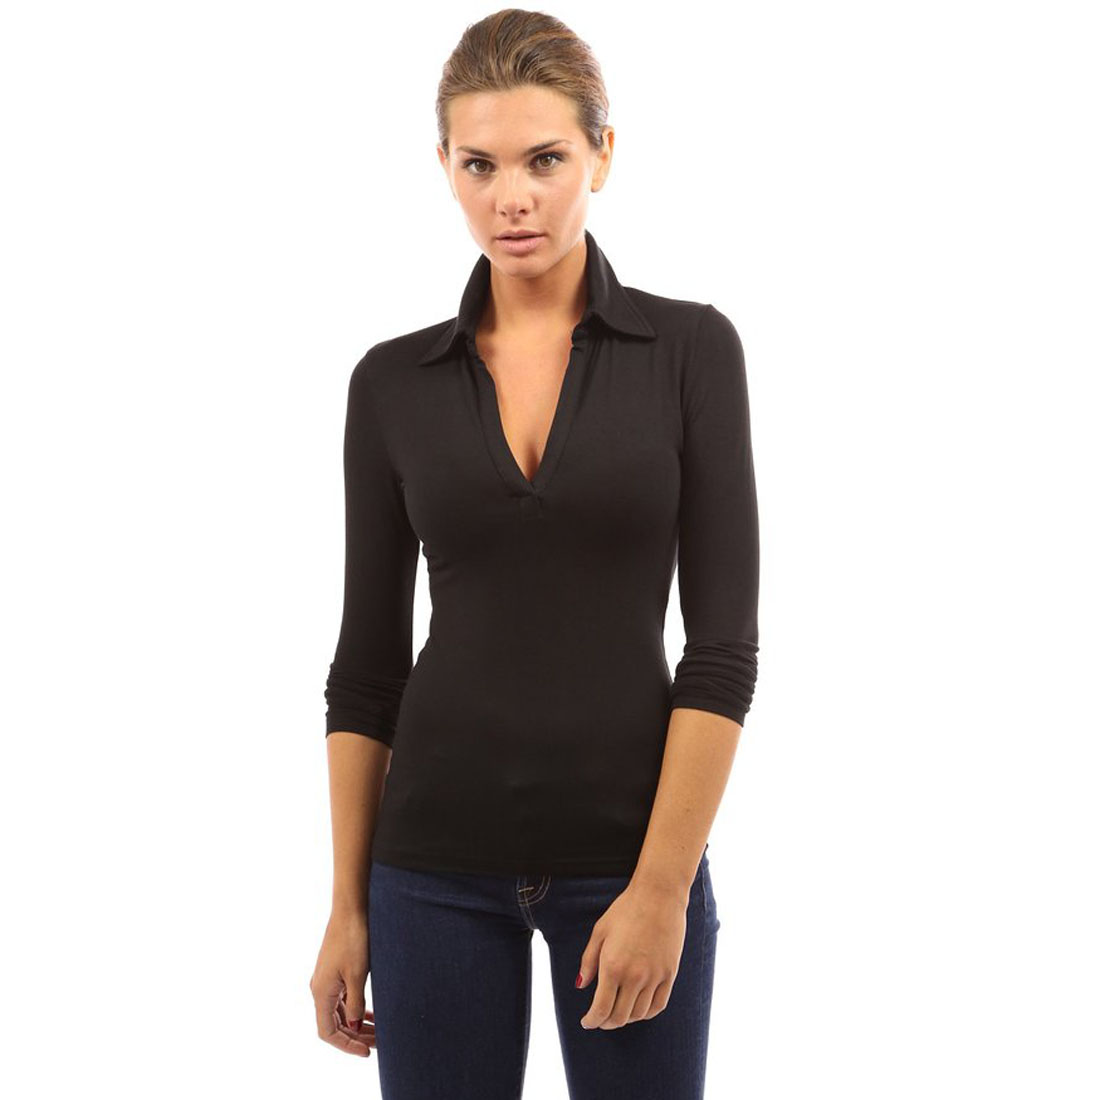 Womens V Neck Long Sleeve Polo Shirt Slim Fit Casual Shirts Tops ...